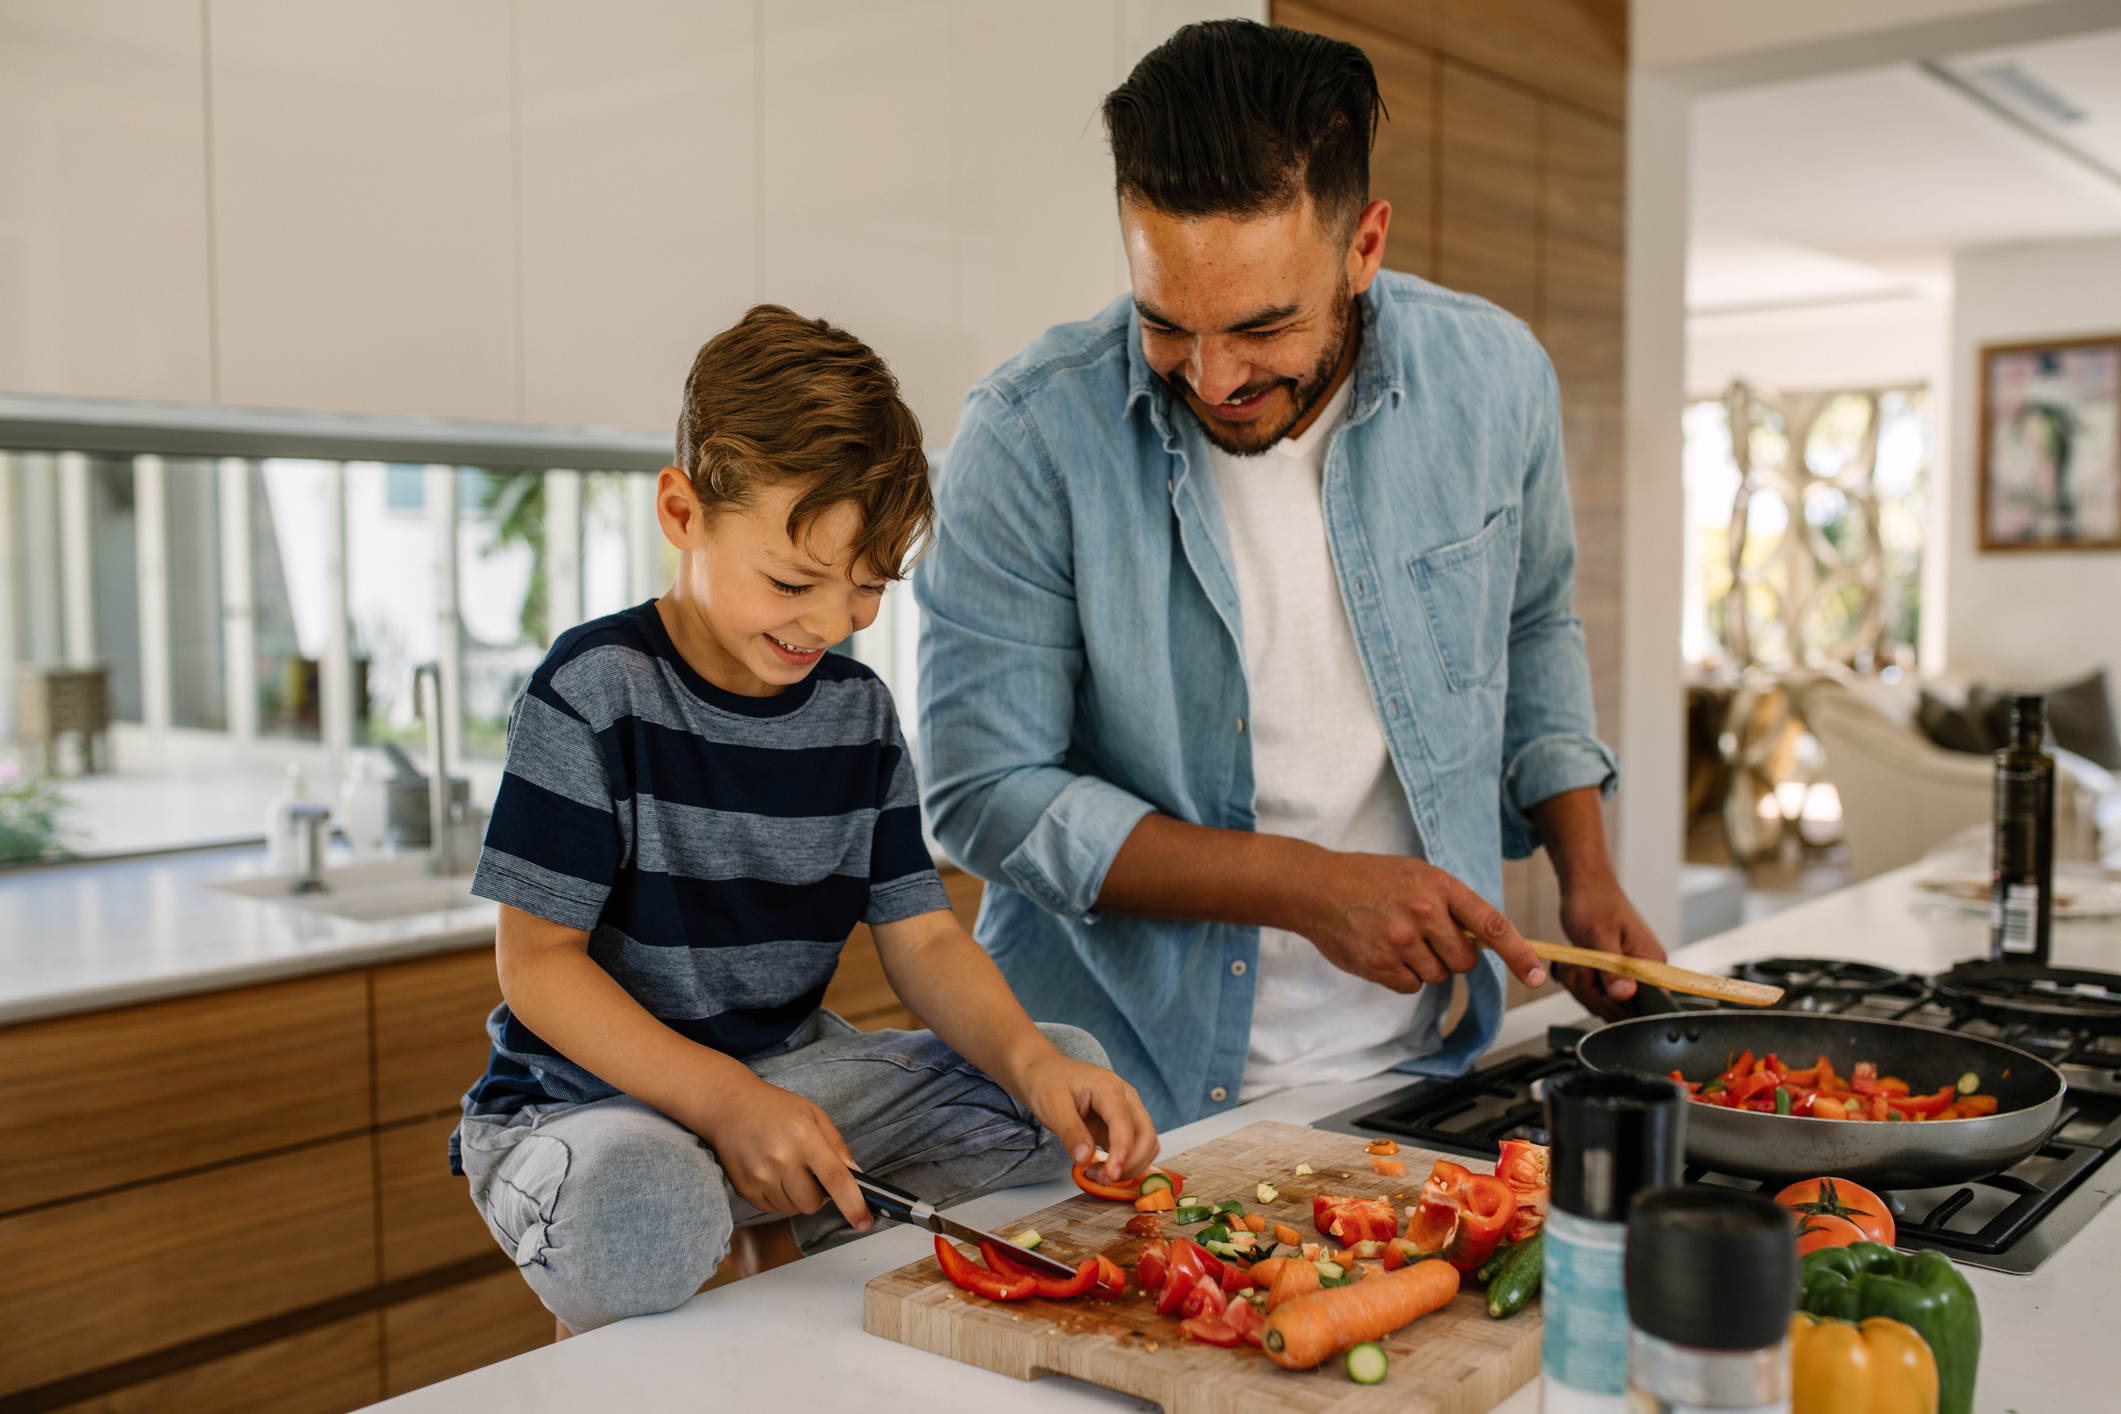 Home cooking: Good for your health - Harvard Health Blog - Harvard Health  Publishing